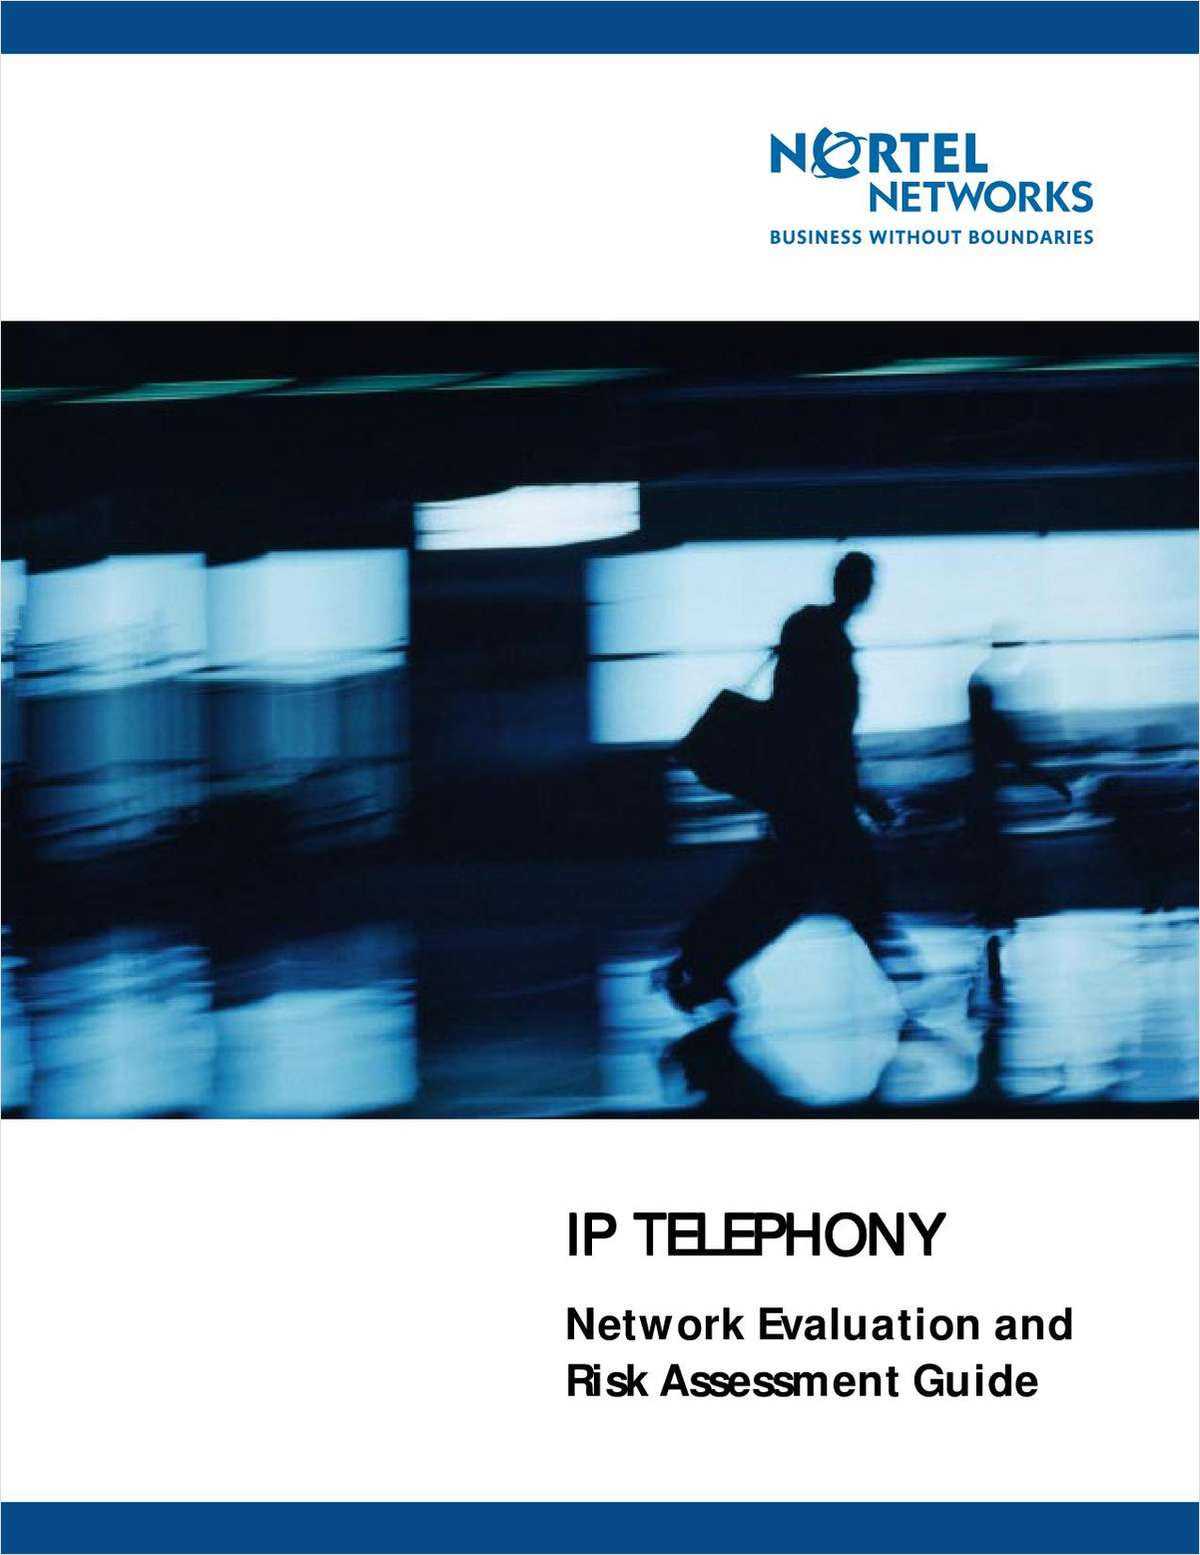 Guide: IP Telephony Network Evaluation and Risk Assessment